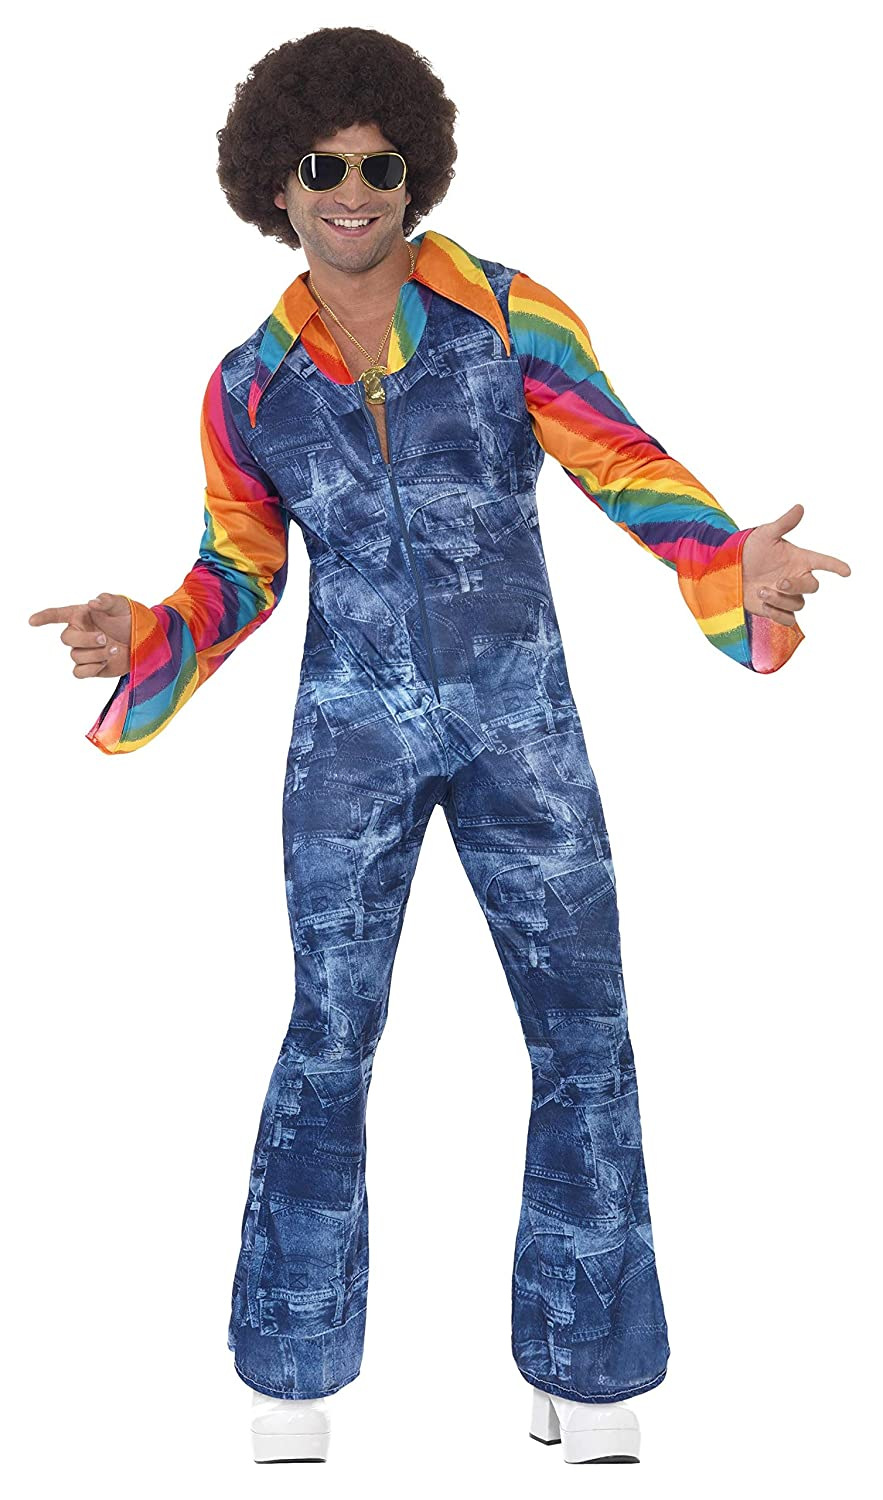 70s Costumes: Disco Costumes, Hippie Outfits Mens Groovier Dancer Costume Disco Outfit $72.40 AT vintagedancer.com